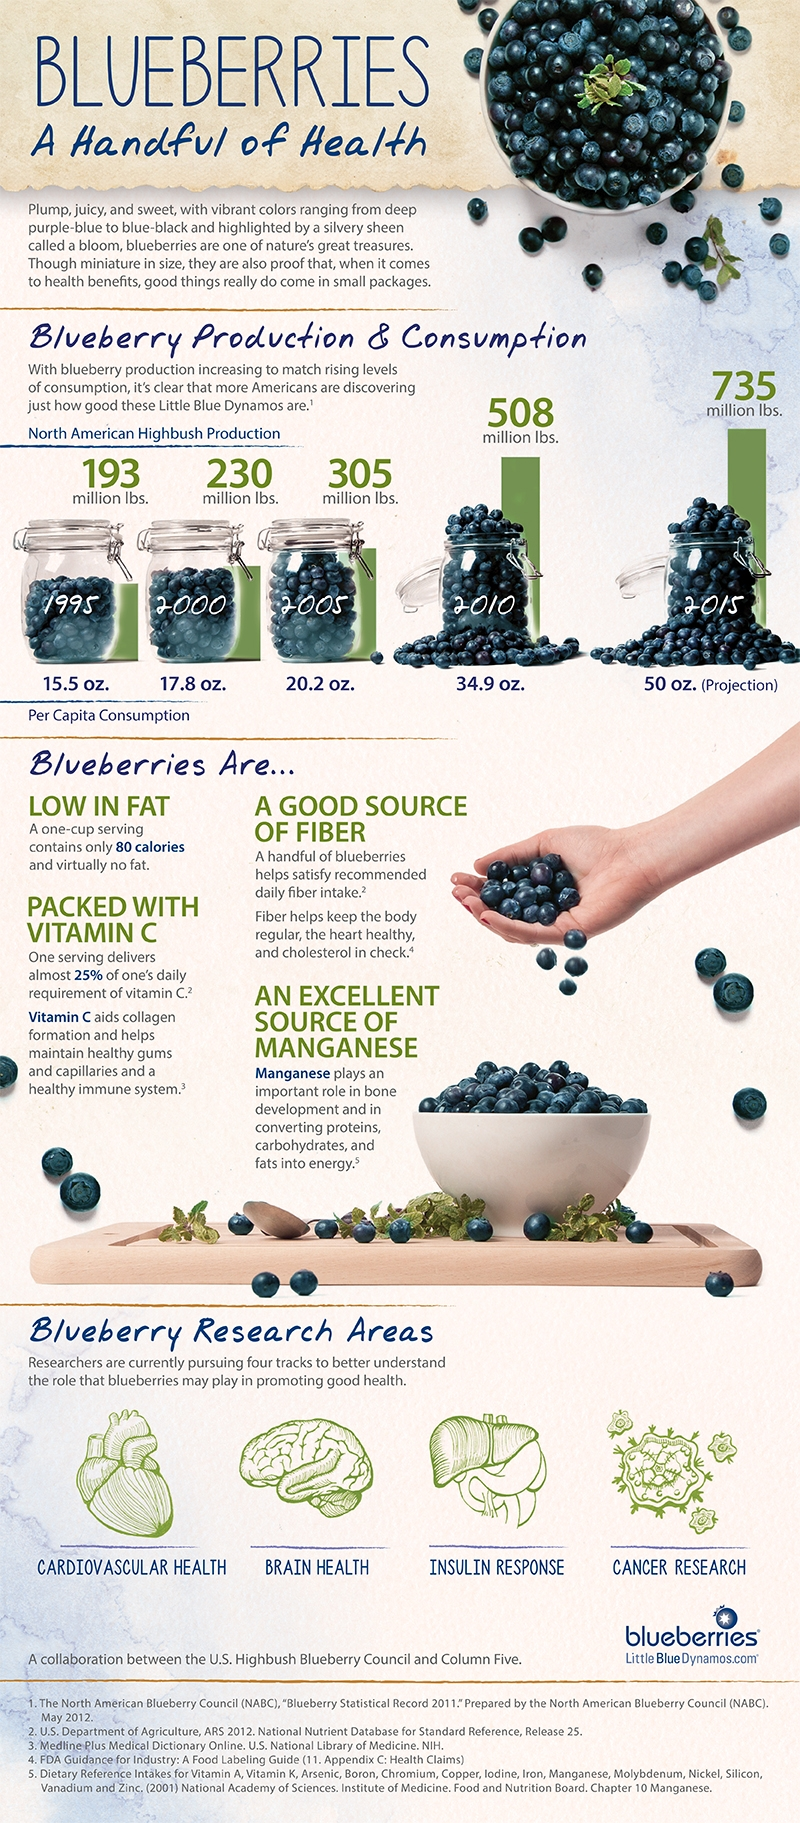 Blueberries: Delicious, Juicy Pops of Good Health - Infographic